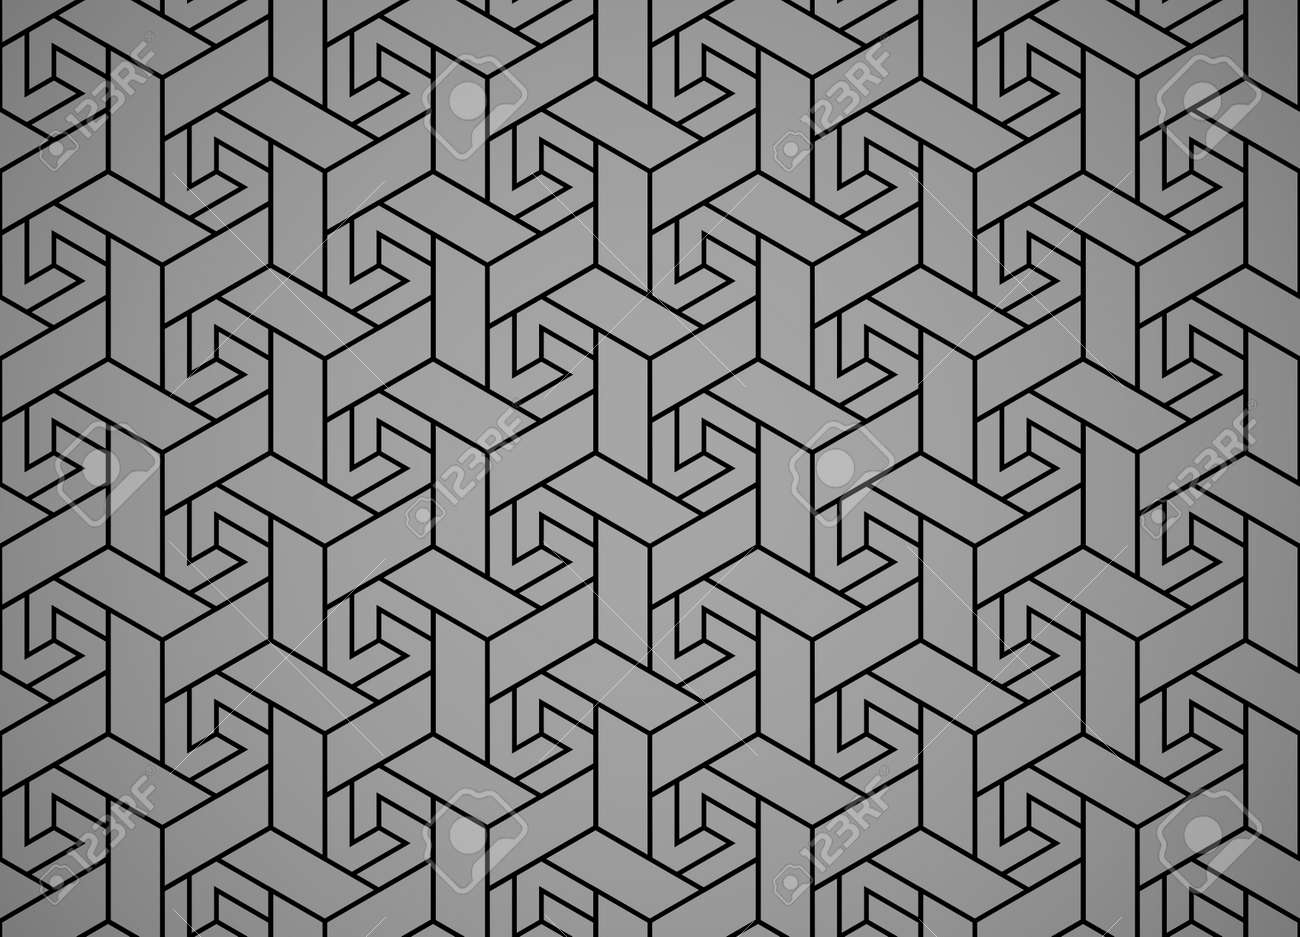 The geometric pattern with lines. Seamless vector background. Black and gray texture. Graphic modern pattern. Simple lattice graphic design - 169842908